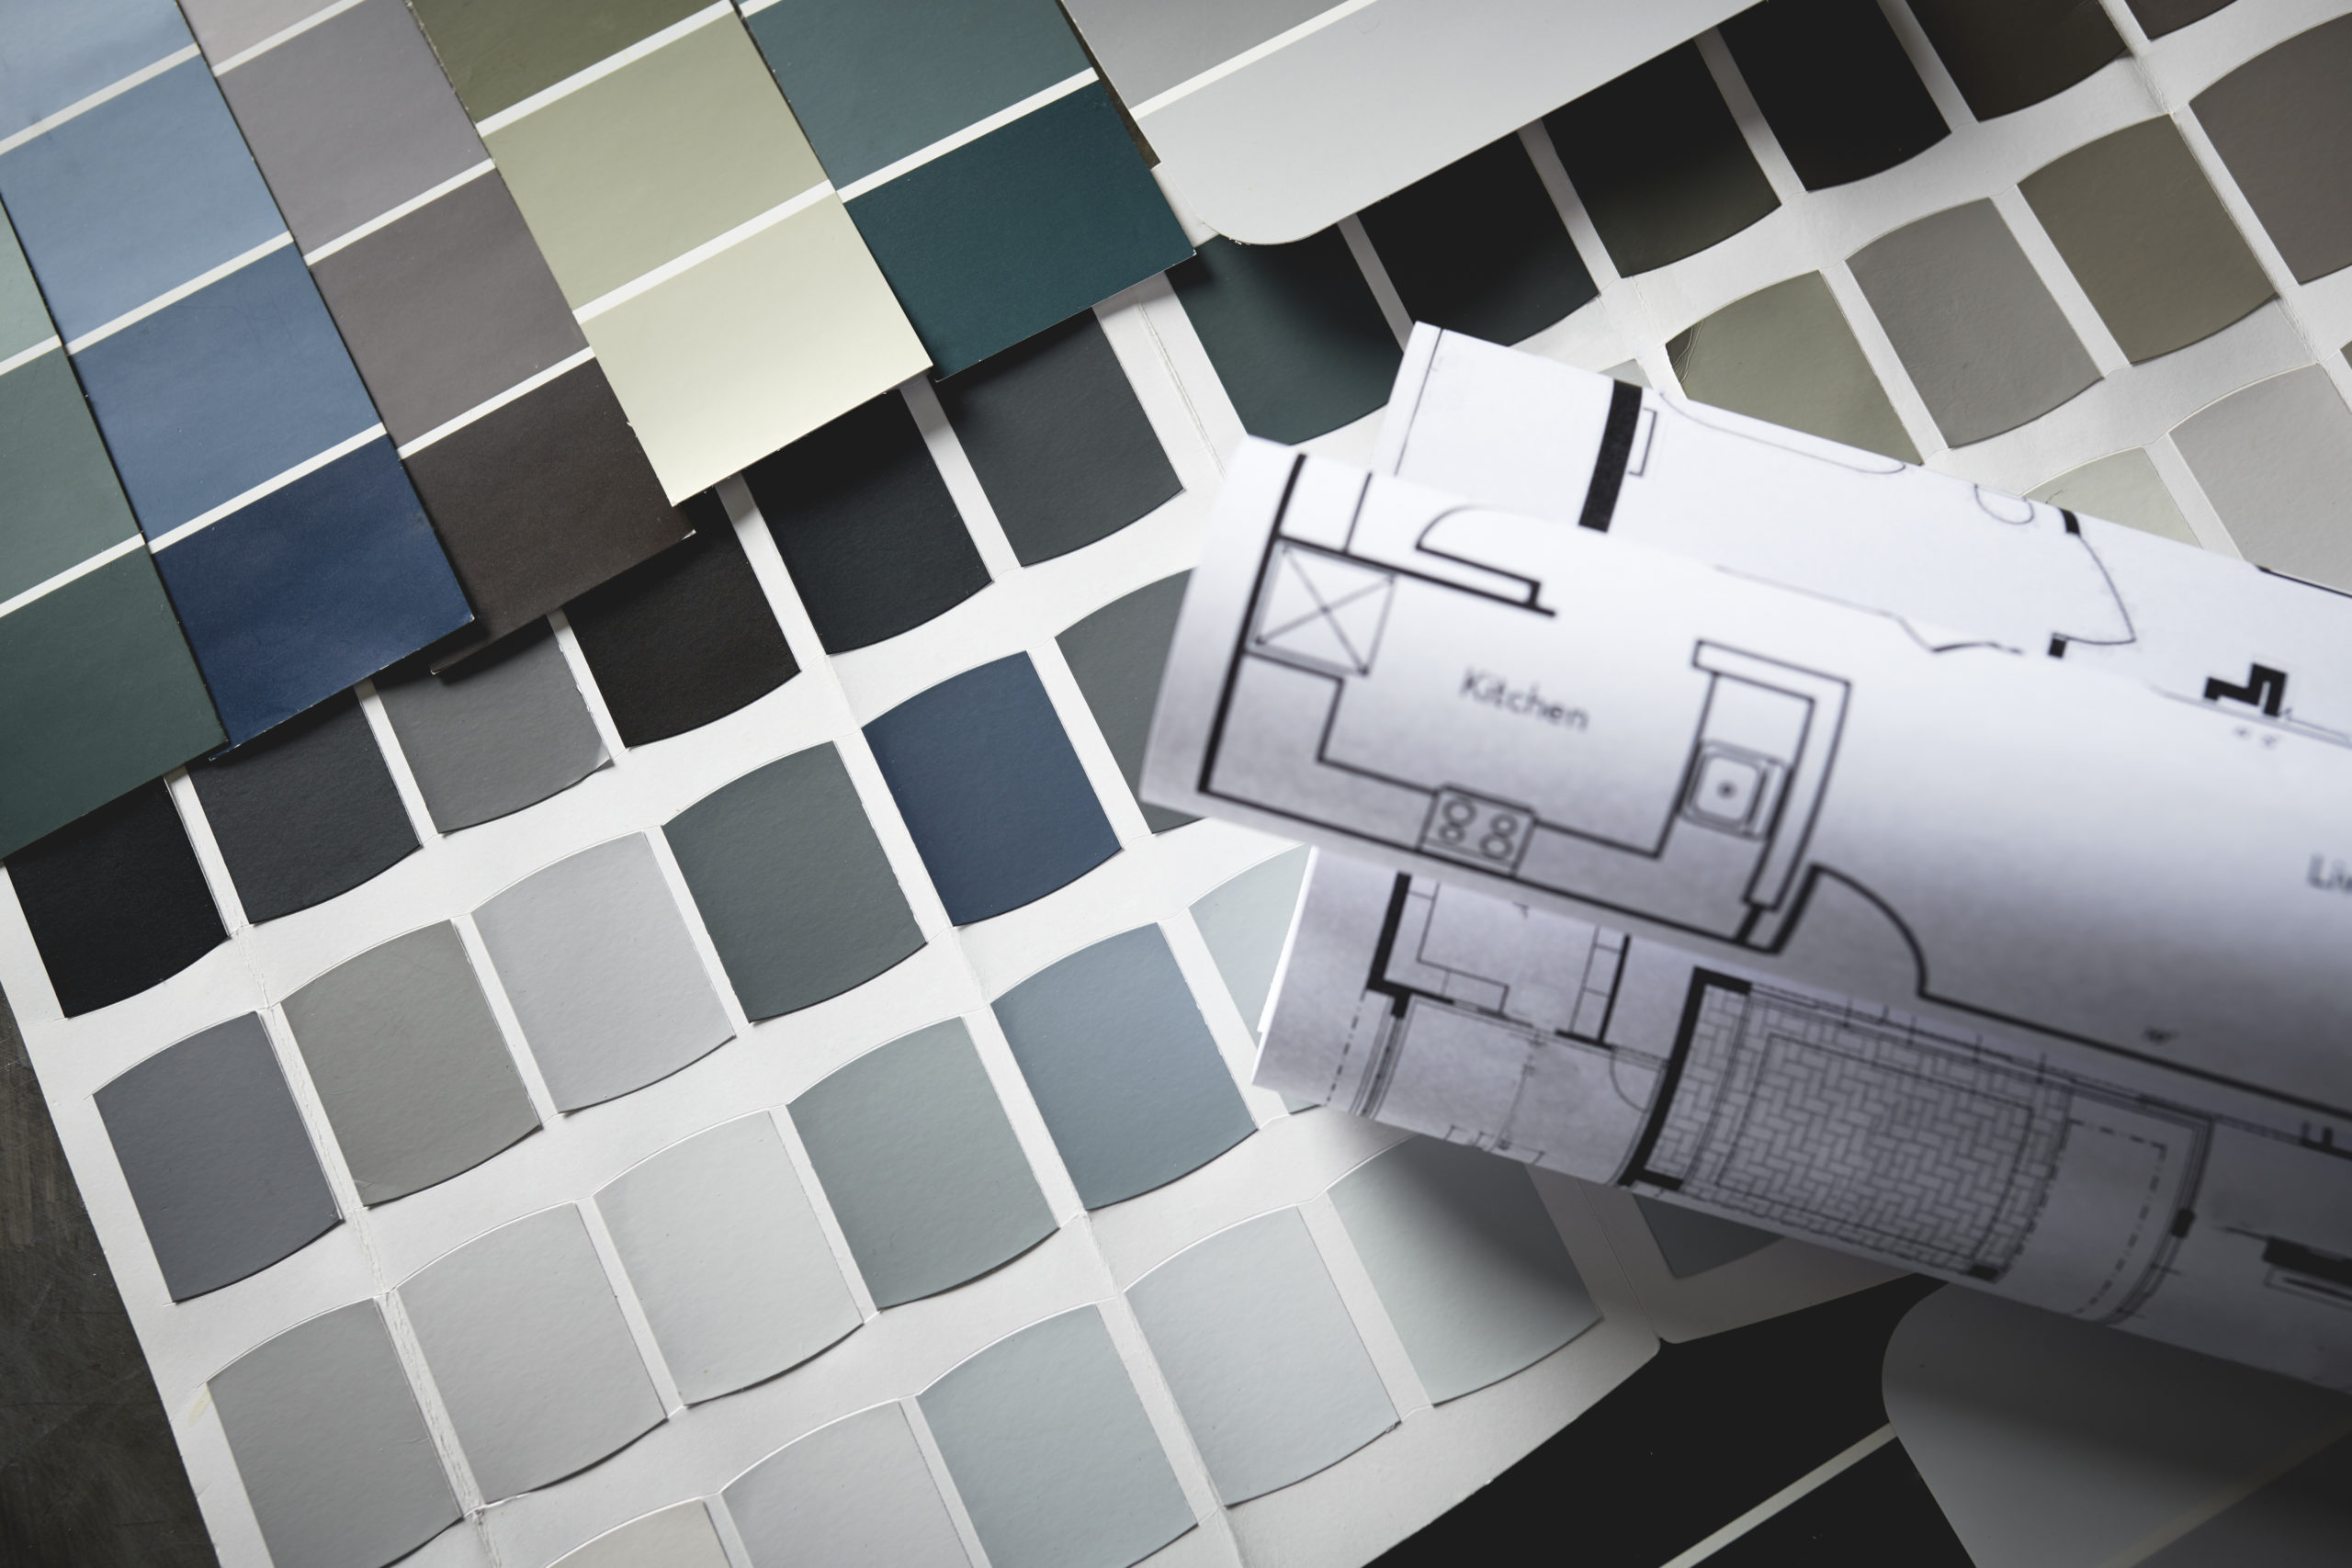 Paint Swatches and house plans